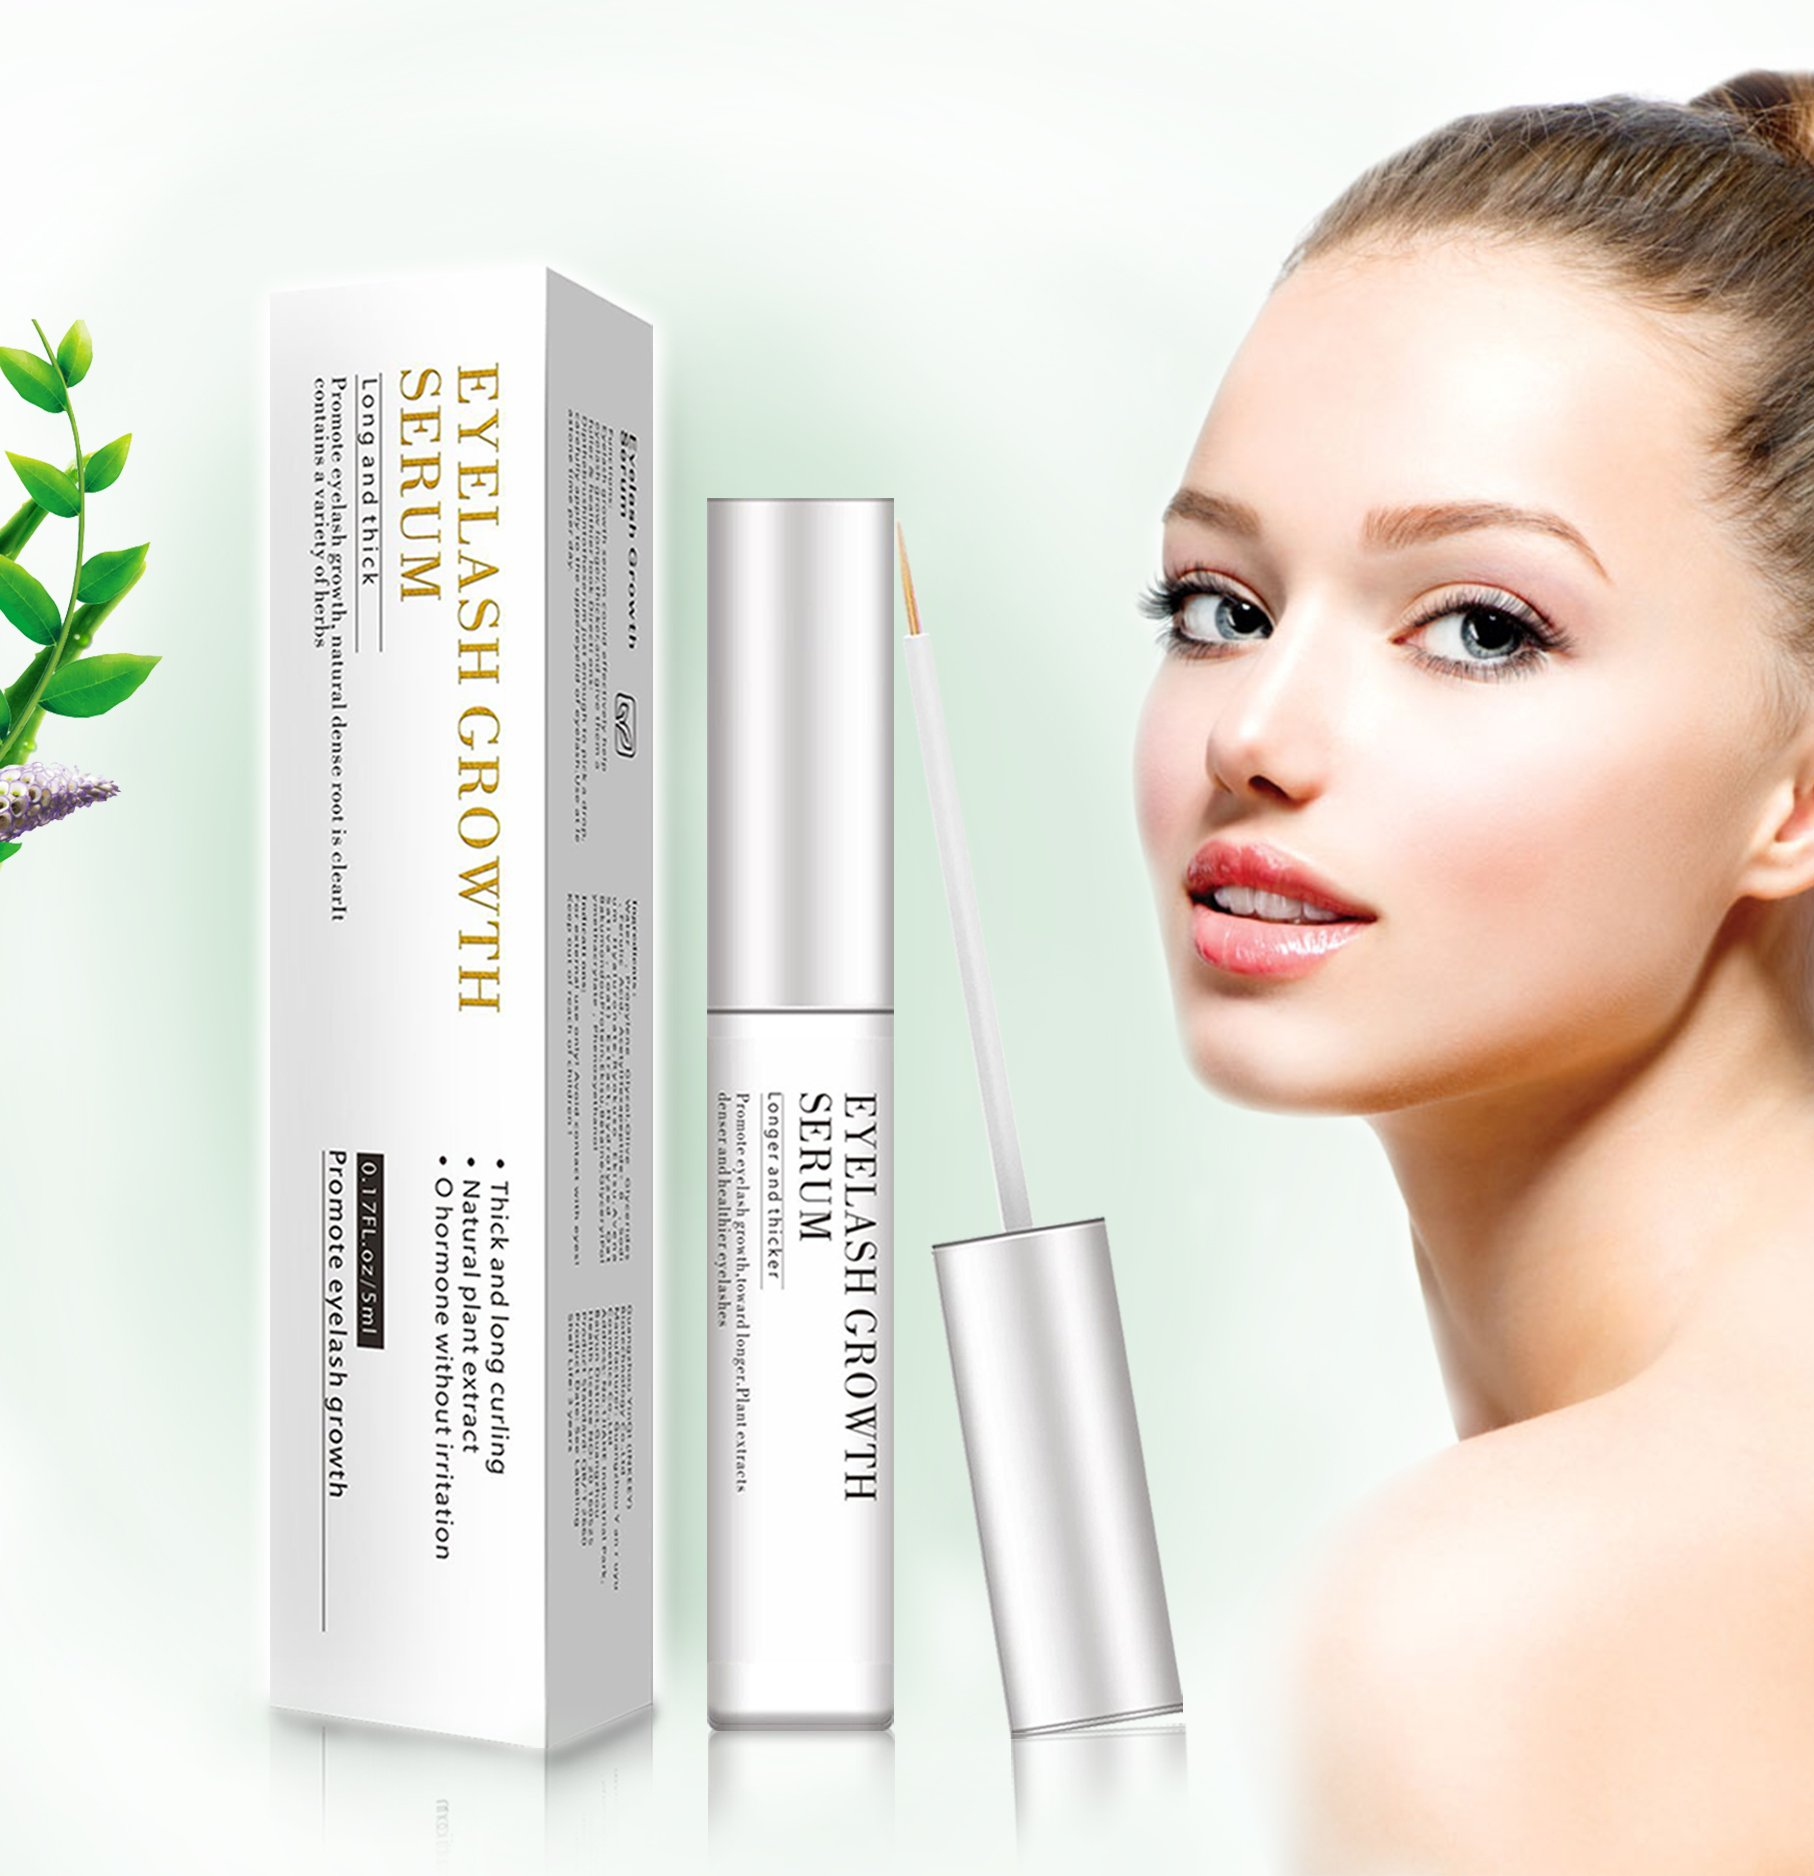 Eyelash Growth Serum-2018 Upgrade Lash Boost&Eyebrow Growth Serum with Natural Exacts for Longer Thicker Eyelash and Brow, Lash Enhancer Nourish Damaged Lashes to Restore Health and Boost Rapid Growth